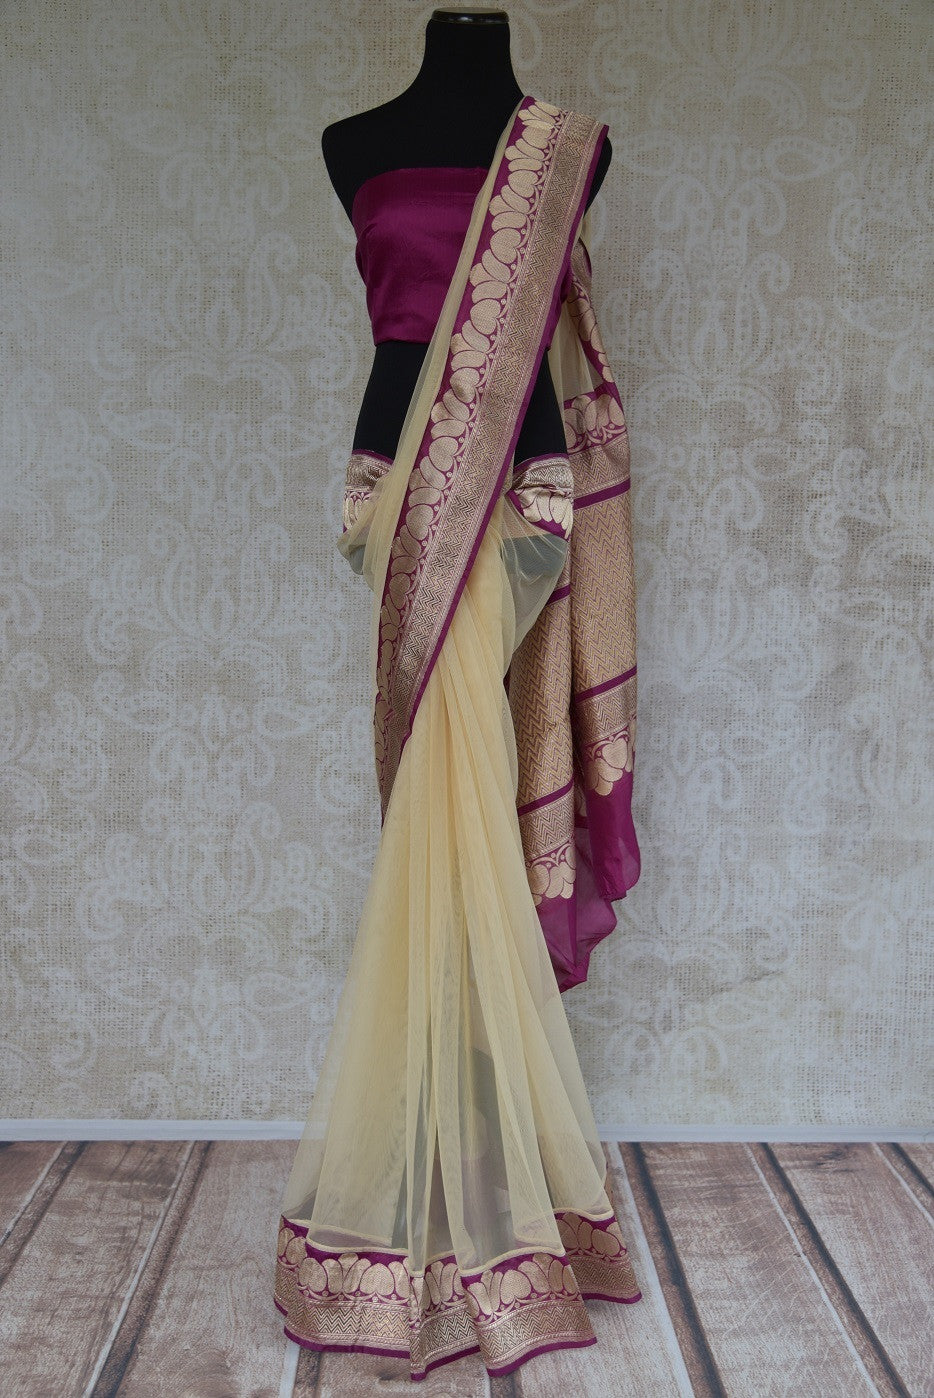 90C257 Net saree with a traditional Banarasi border. The cream and maroon saree from India can be bought at Pure Elegance - our Indian clothing store in USA. This one is a versatile pick you will love for years to come.